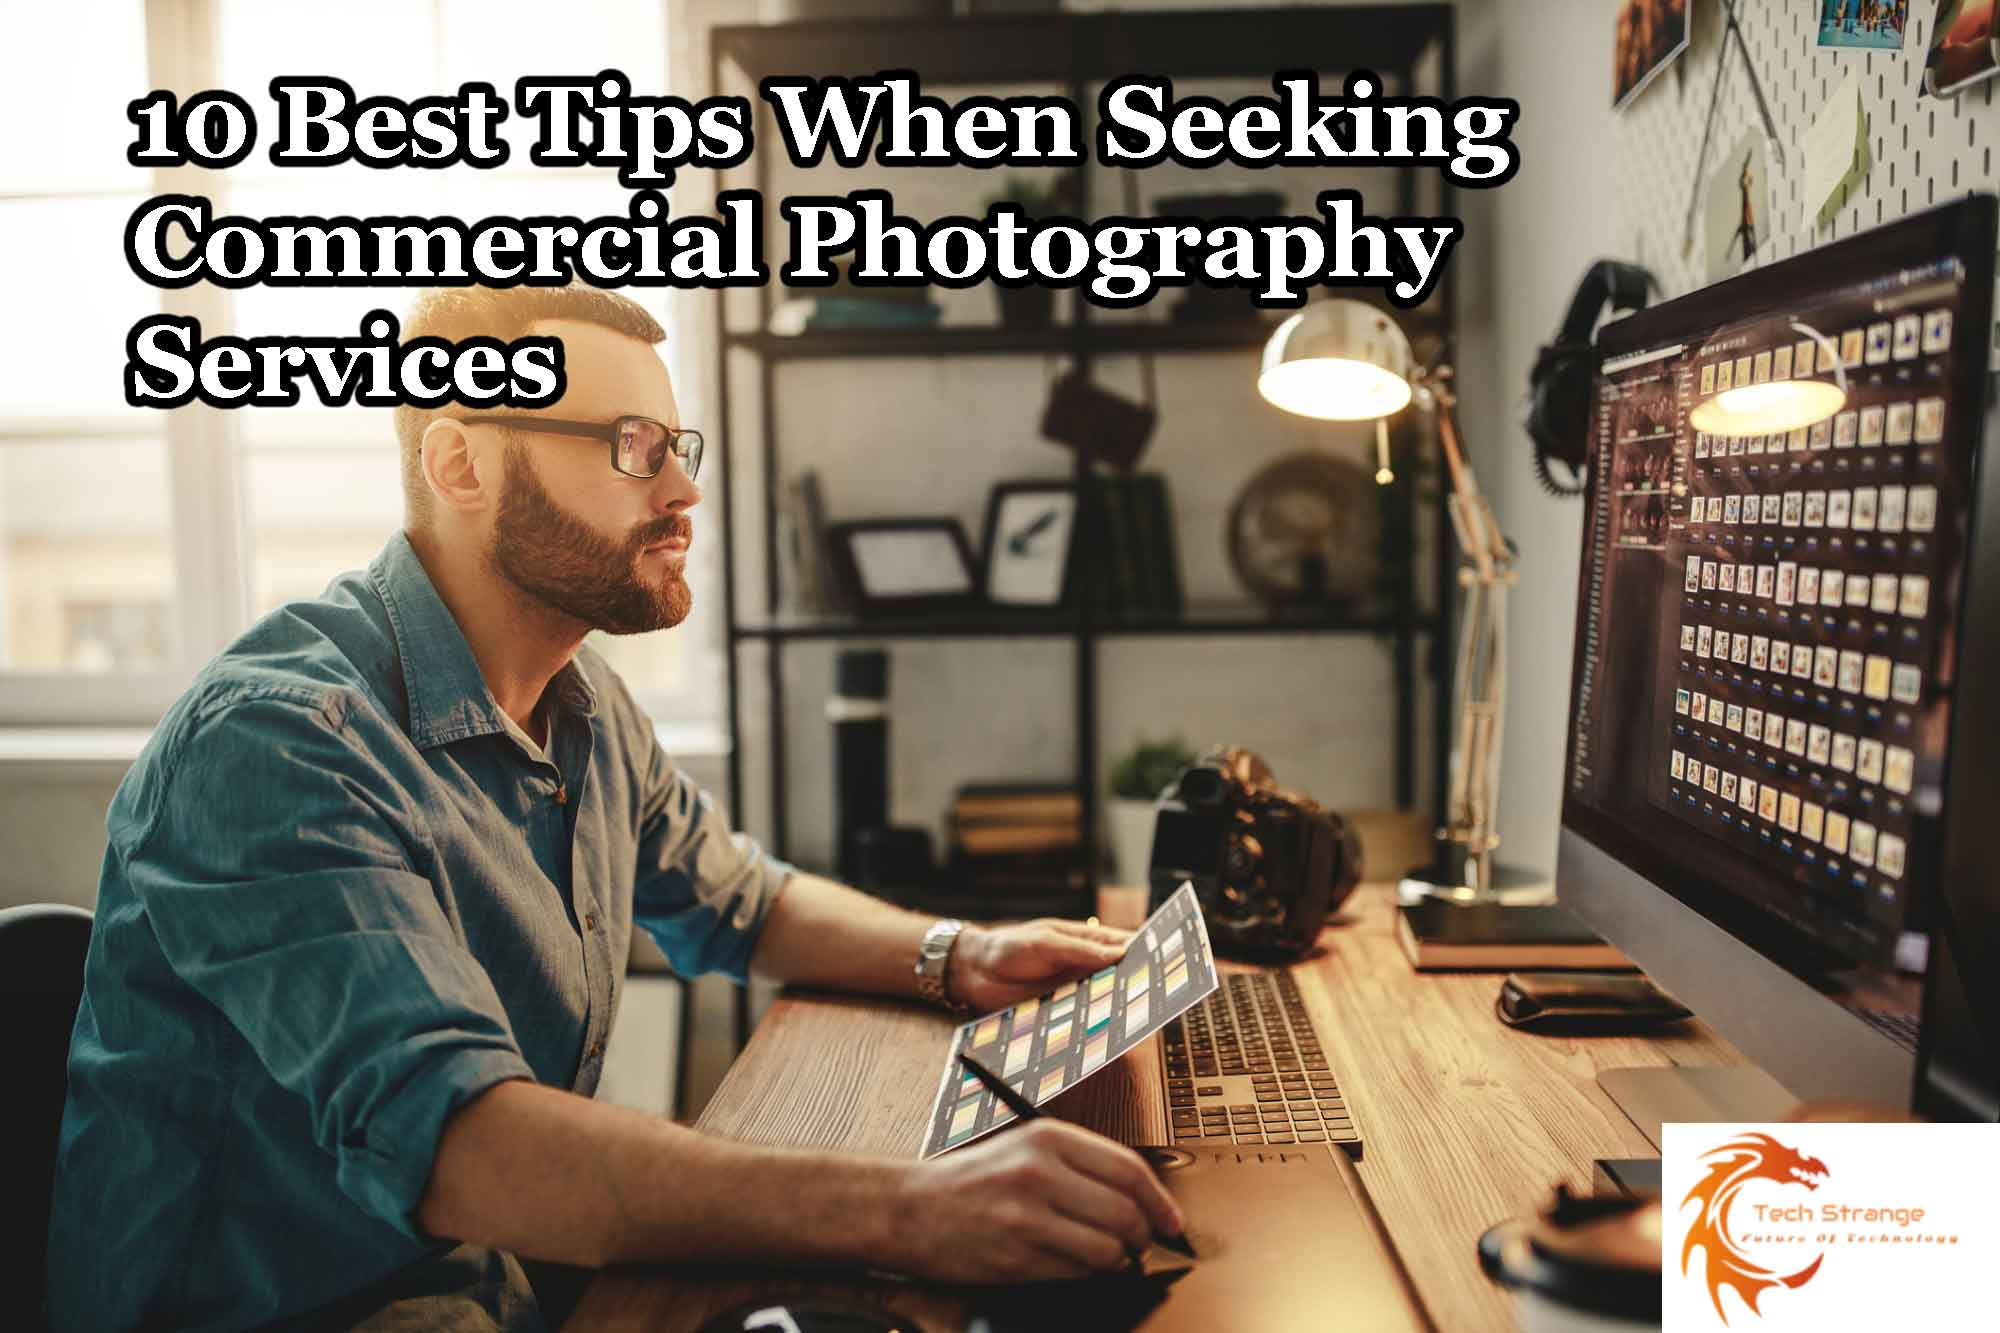 Commercial-Photography-Services